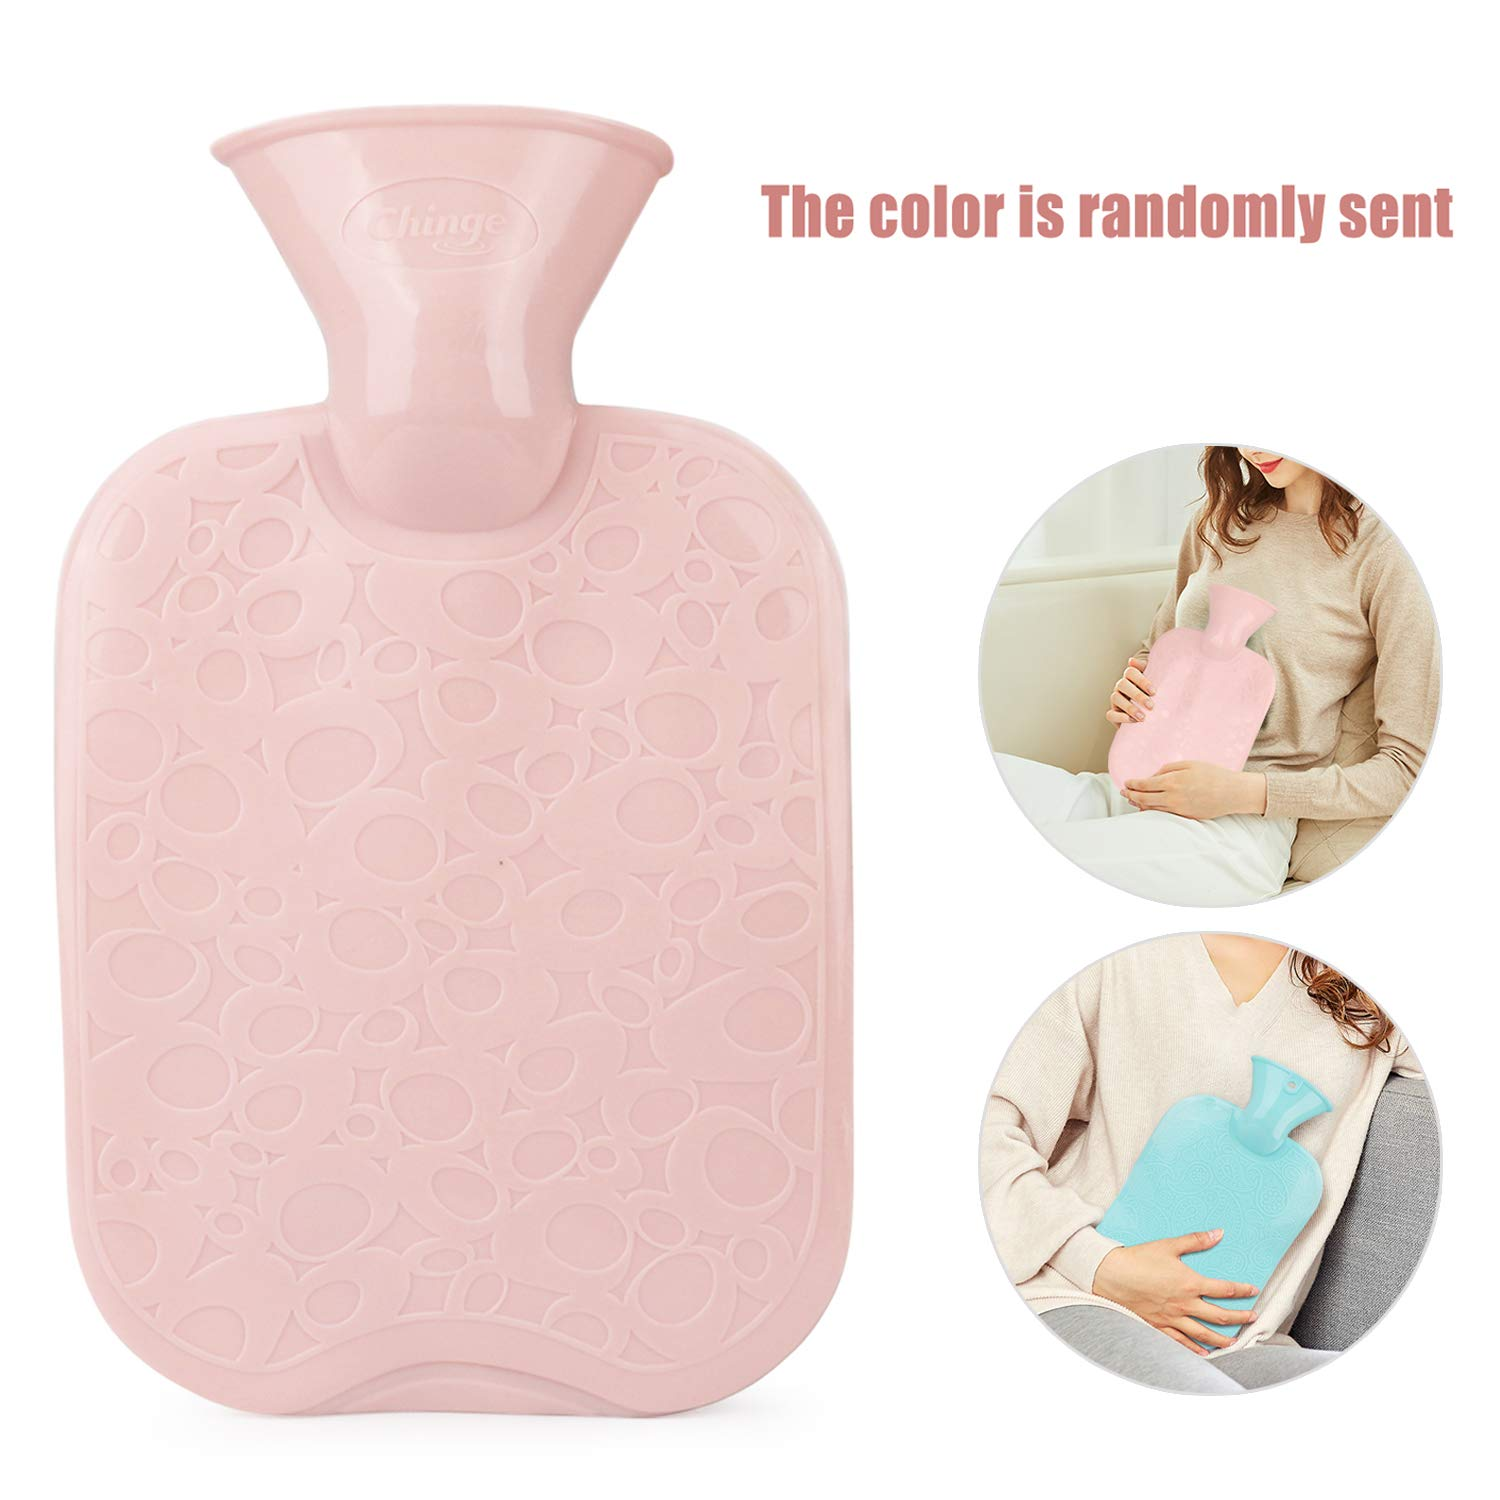 Aches and Pains Heat Therapy Cold Therapy Arthritis Idefair Hot Water Bottle with Cover,Removeable /& Washable Premium Faux Fur Cover,Large Capacity Hot Water Bag for Pain Relief for Cramps